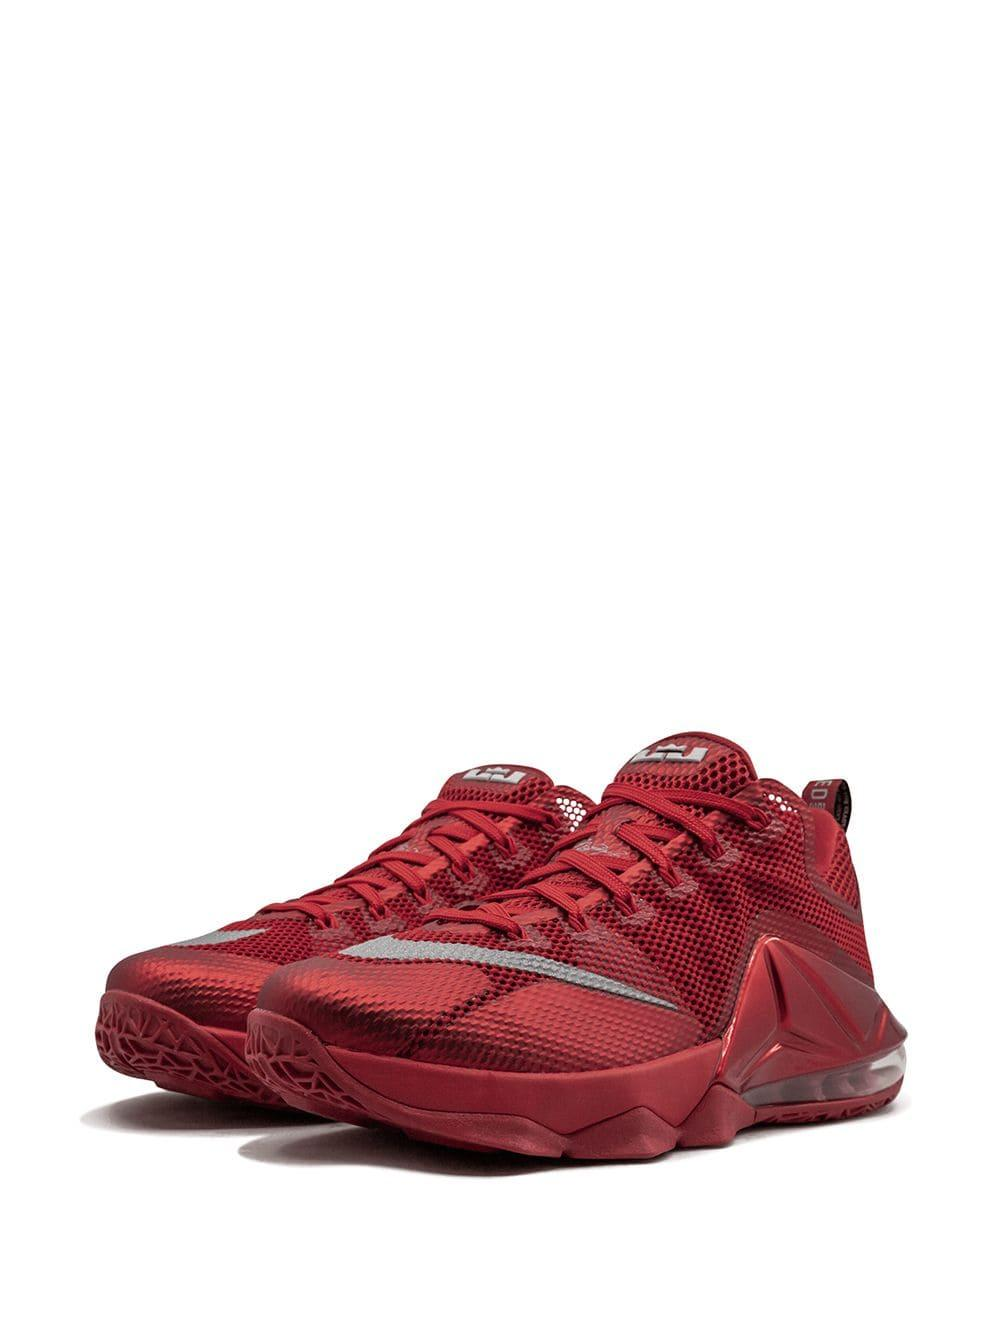 on sale cef3d df806 Nike Lebron 12 Low Ep Sneakers in Red for Men - Lyst